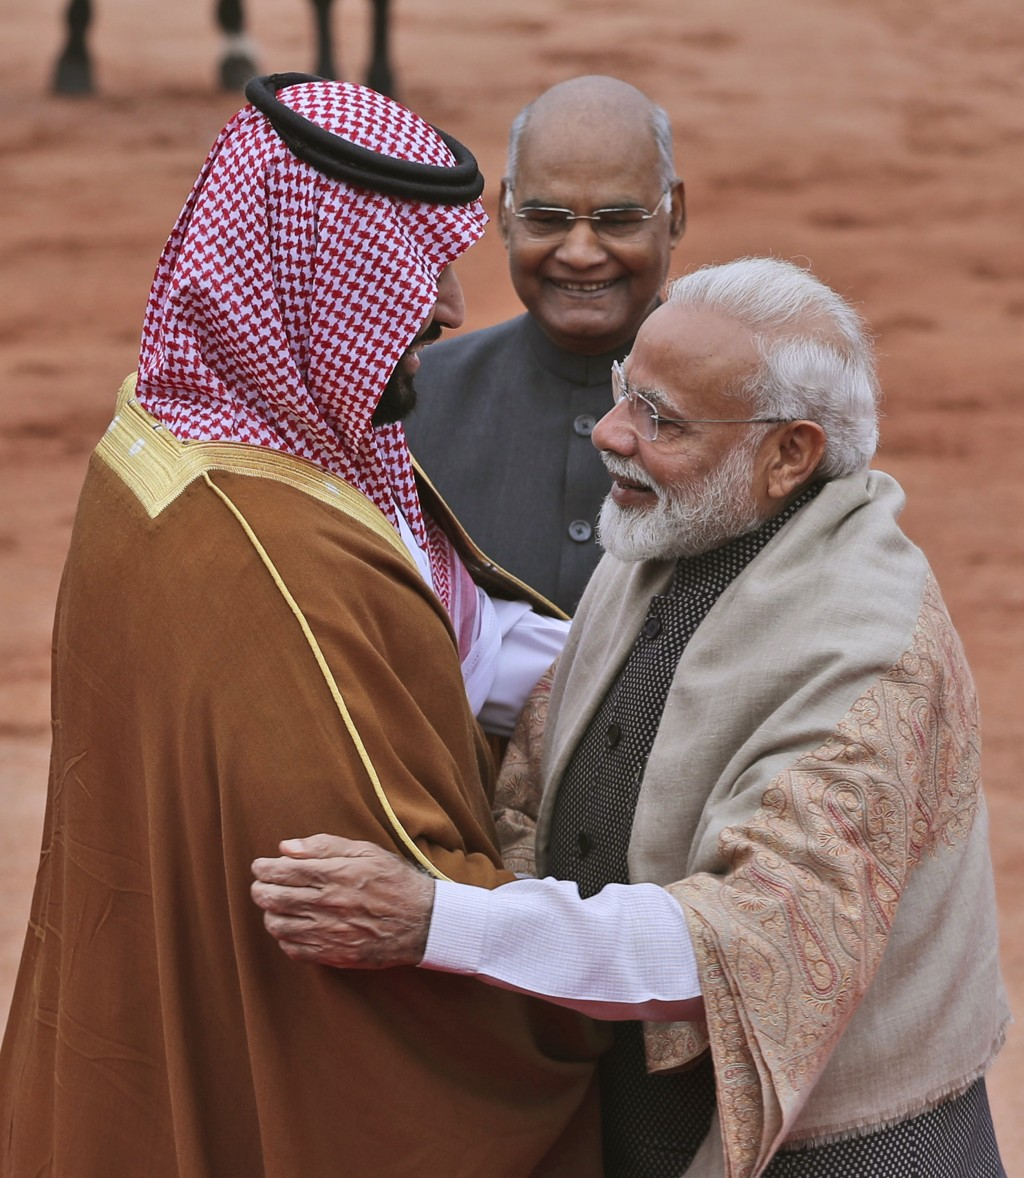 Indian Prime Minister Narendra Modi welcomes Saudi Arabia's Crown Prince Mohammed bin Salman with a hug, as Indian President Ram Nath Kovind stands be...